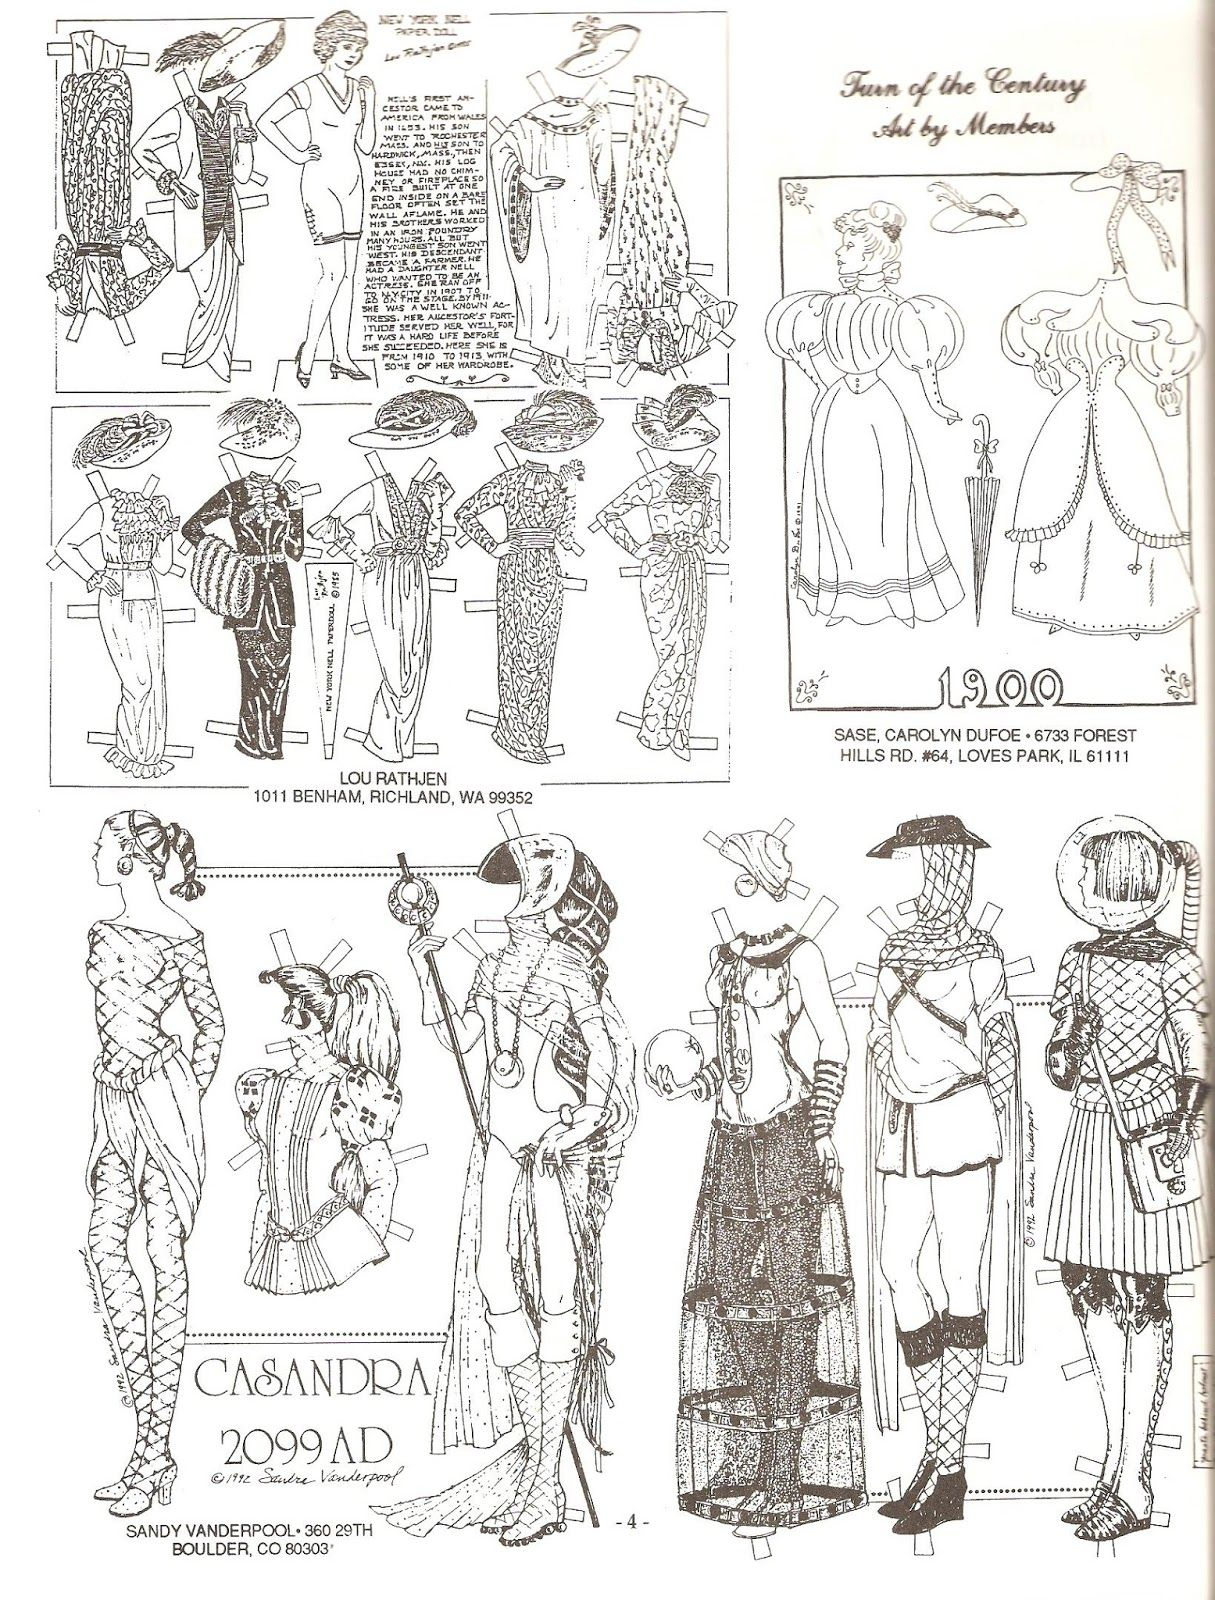 Pin on PAPER DOLLS REALLY ANTIQUE